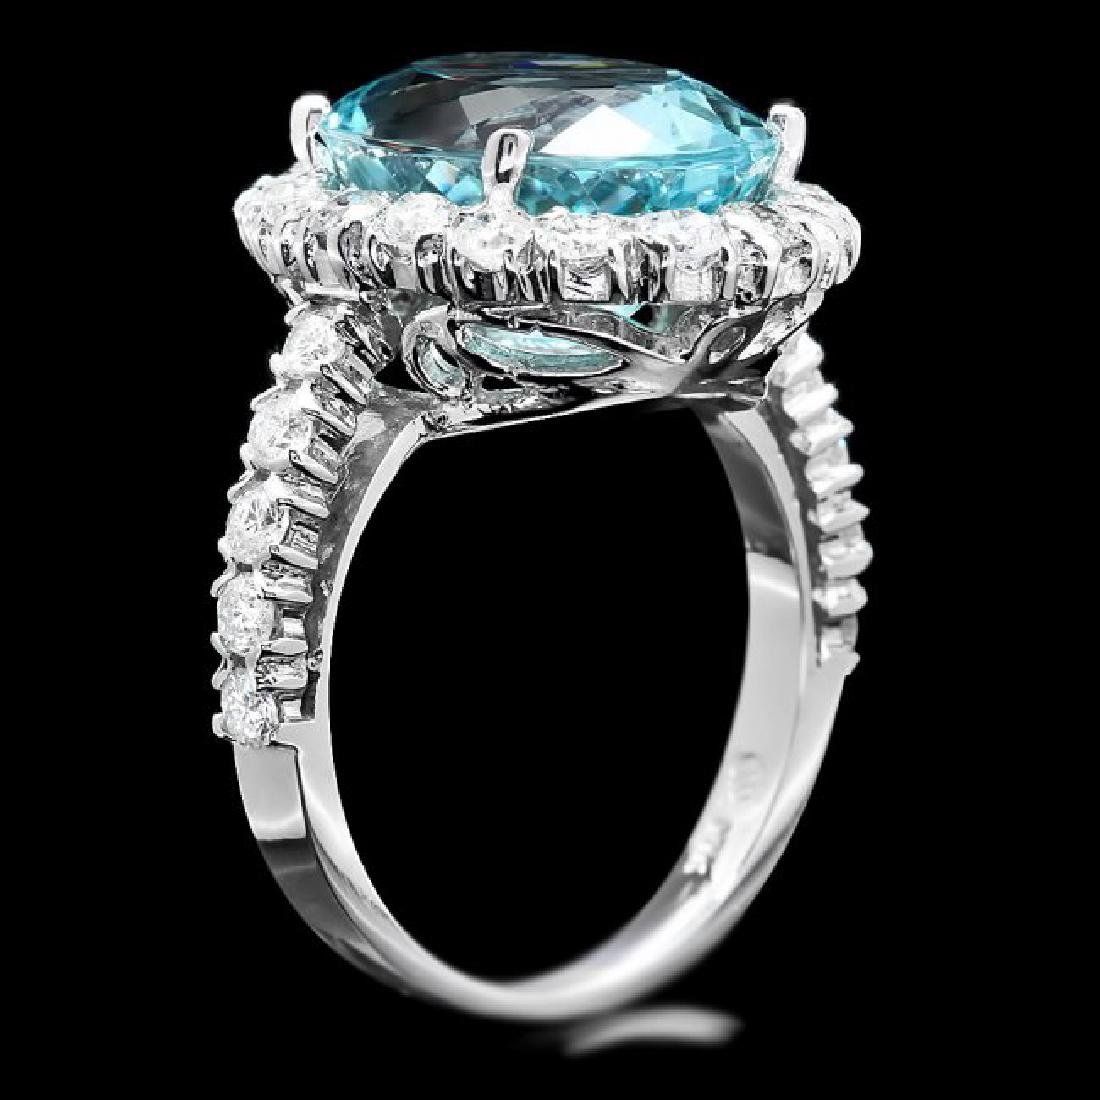 14k Gold 7.50ct Aquamarine 1.55ct Diamond Ring - 3